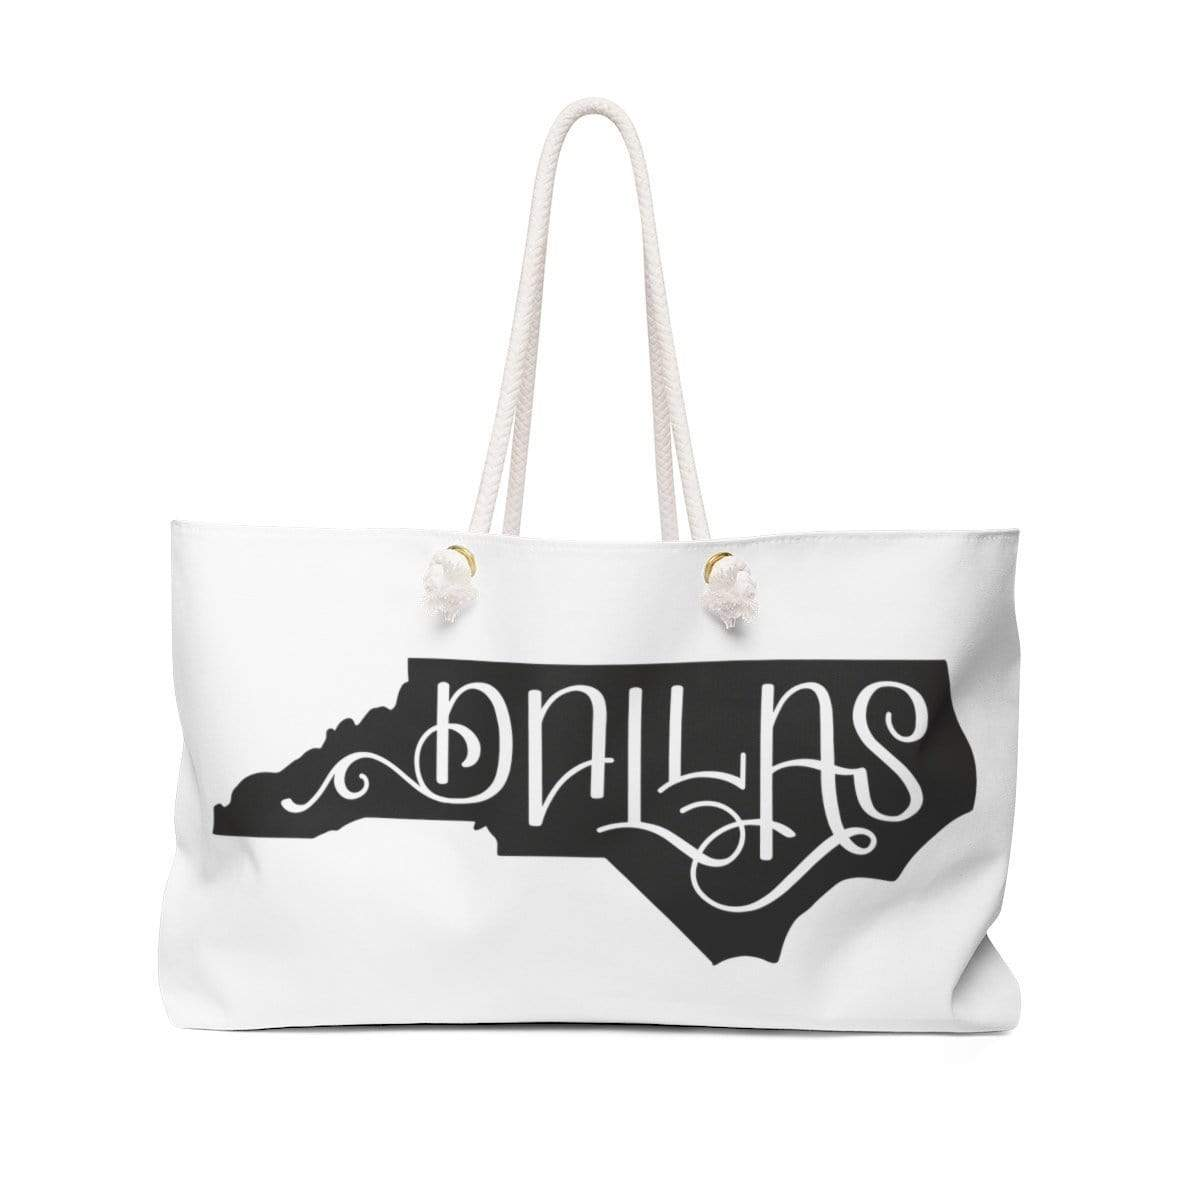 Leanne & Co. Bags 24x13 Dallas, NC Weekender Bag